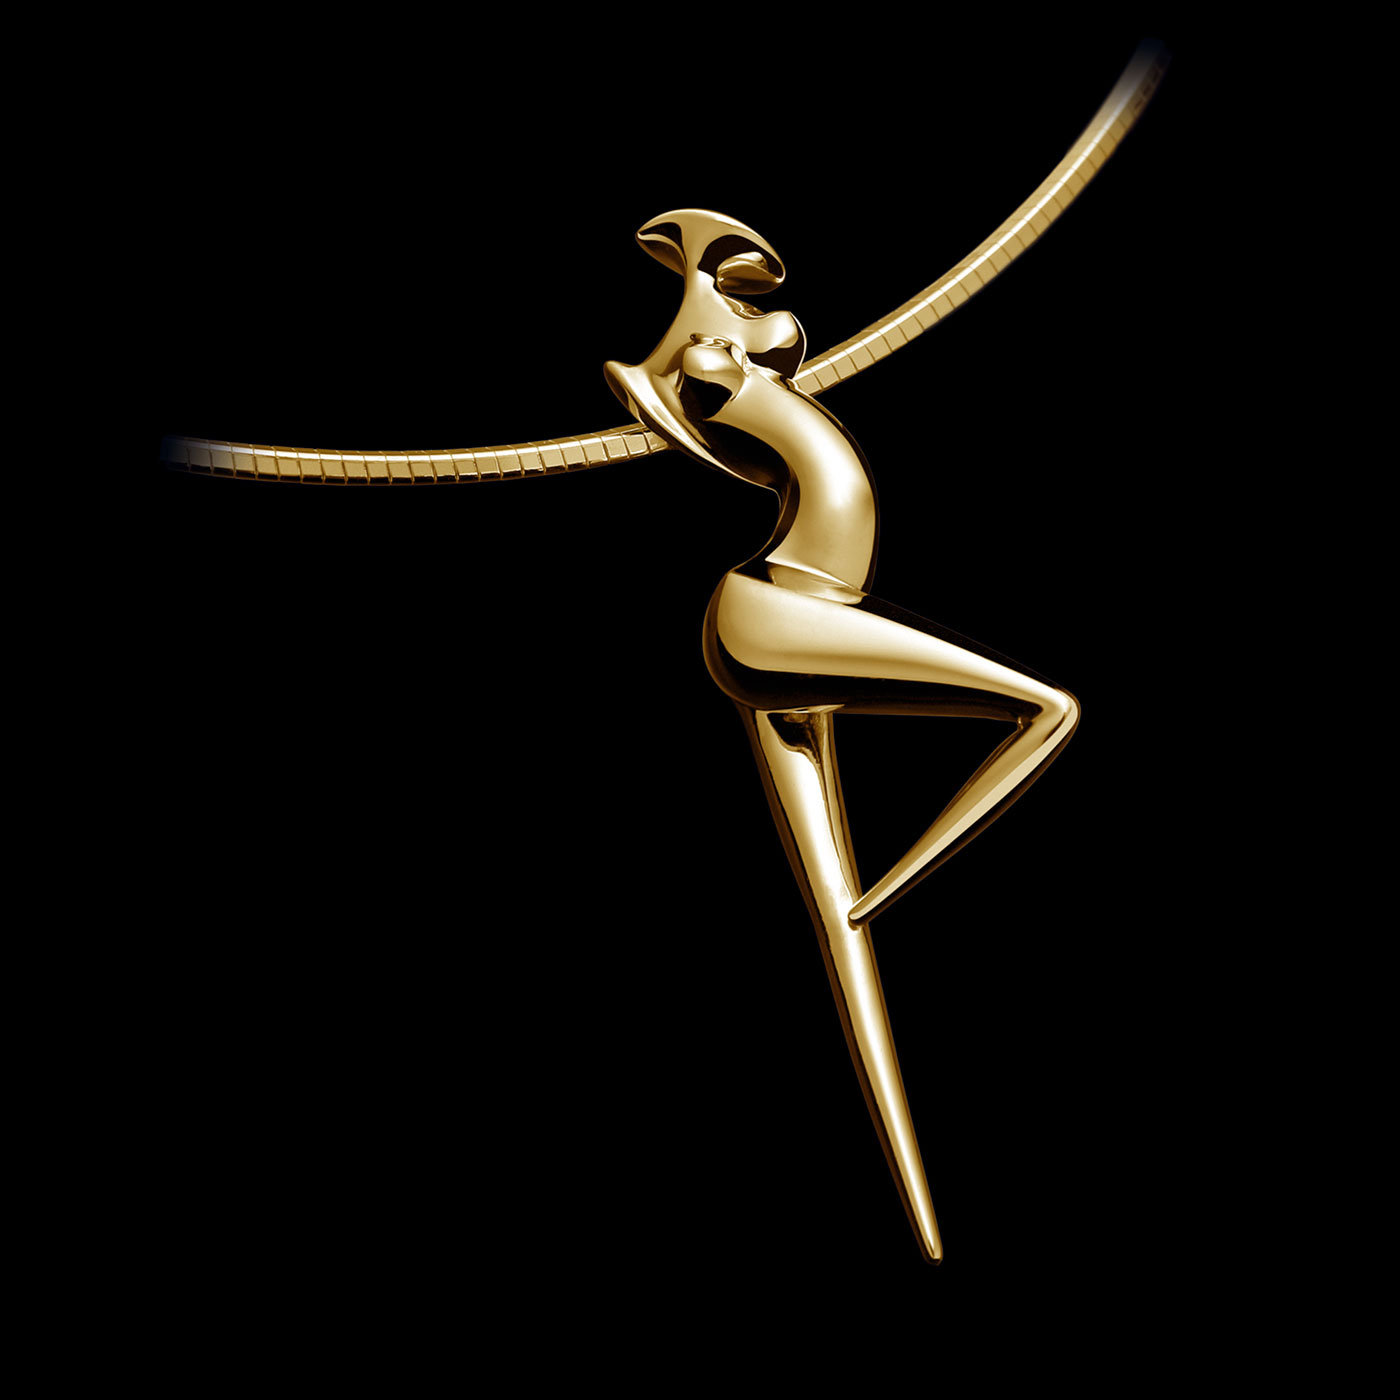 Pendant La Danseuse, contemporary Gold Jewel of sculptor Marion Bürkle